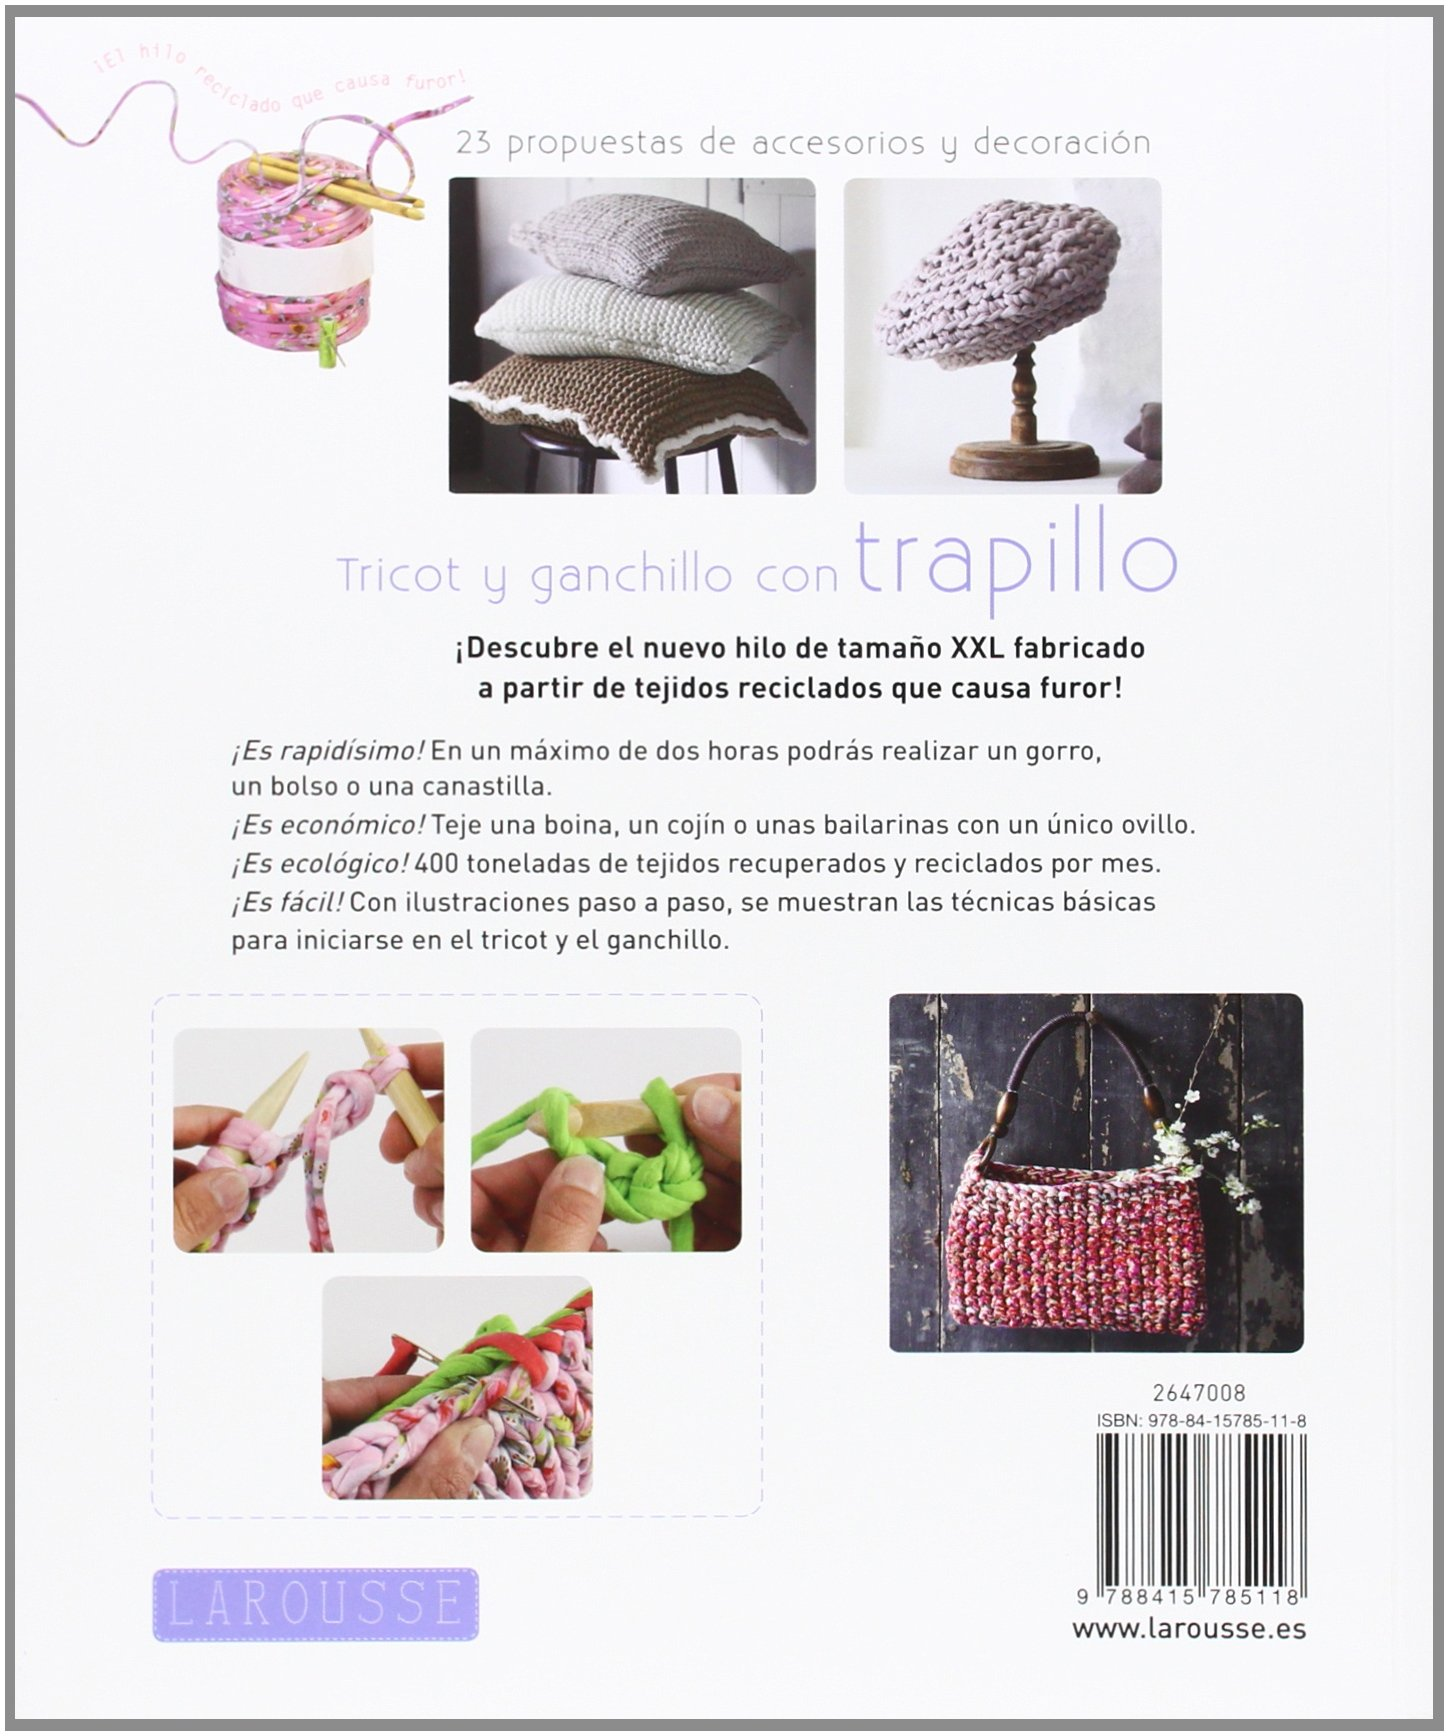 Amazon.com: Tricot y ganchillo con trapillo (9788415785118 ...